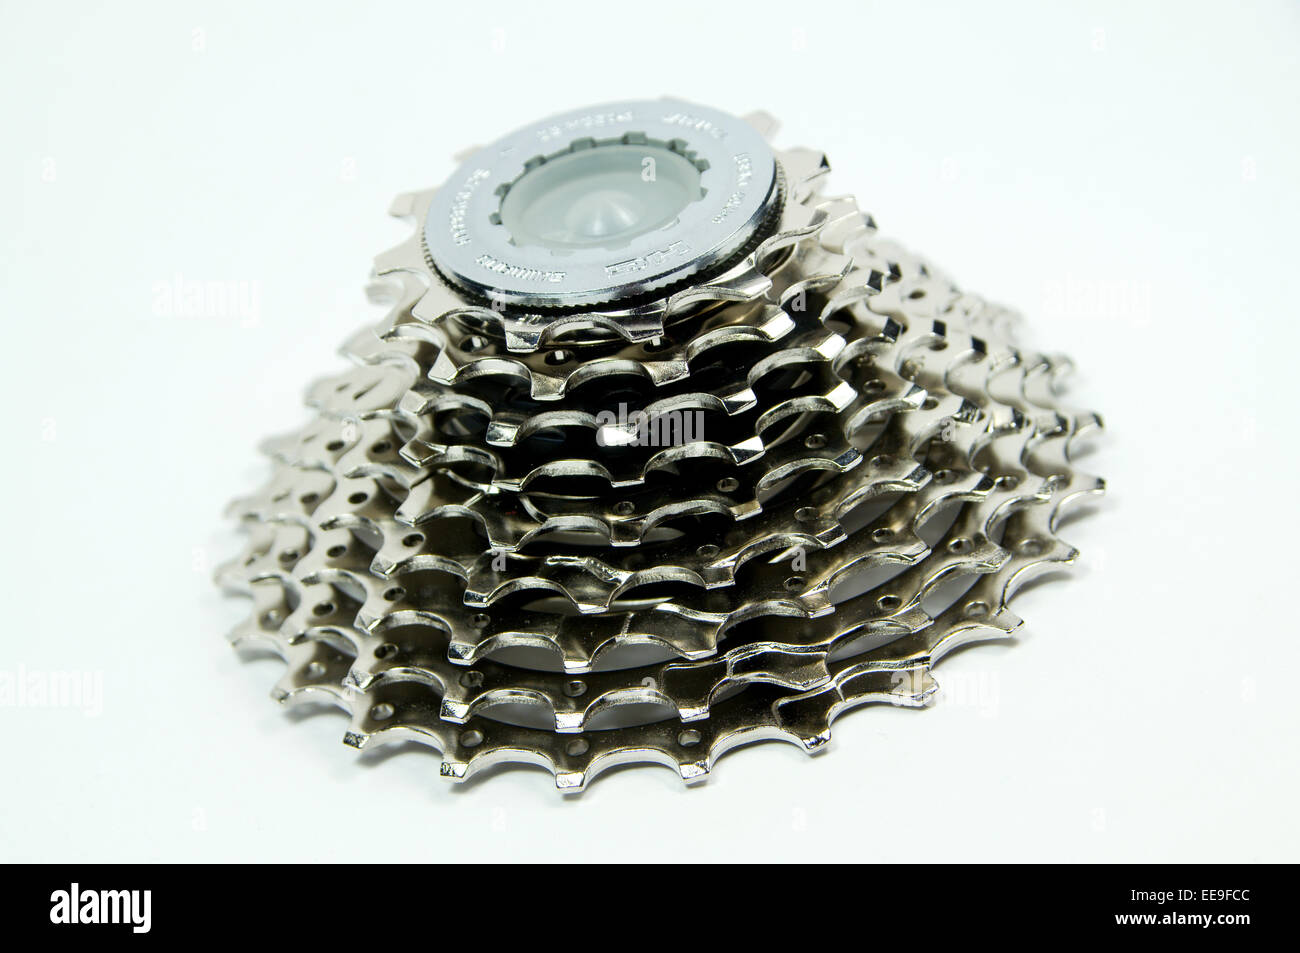 Shimano 9 speed bicycle cassette - Stock Image